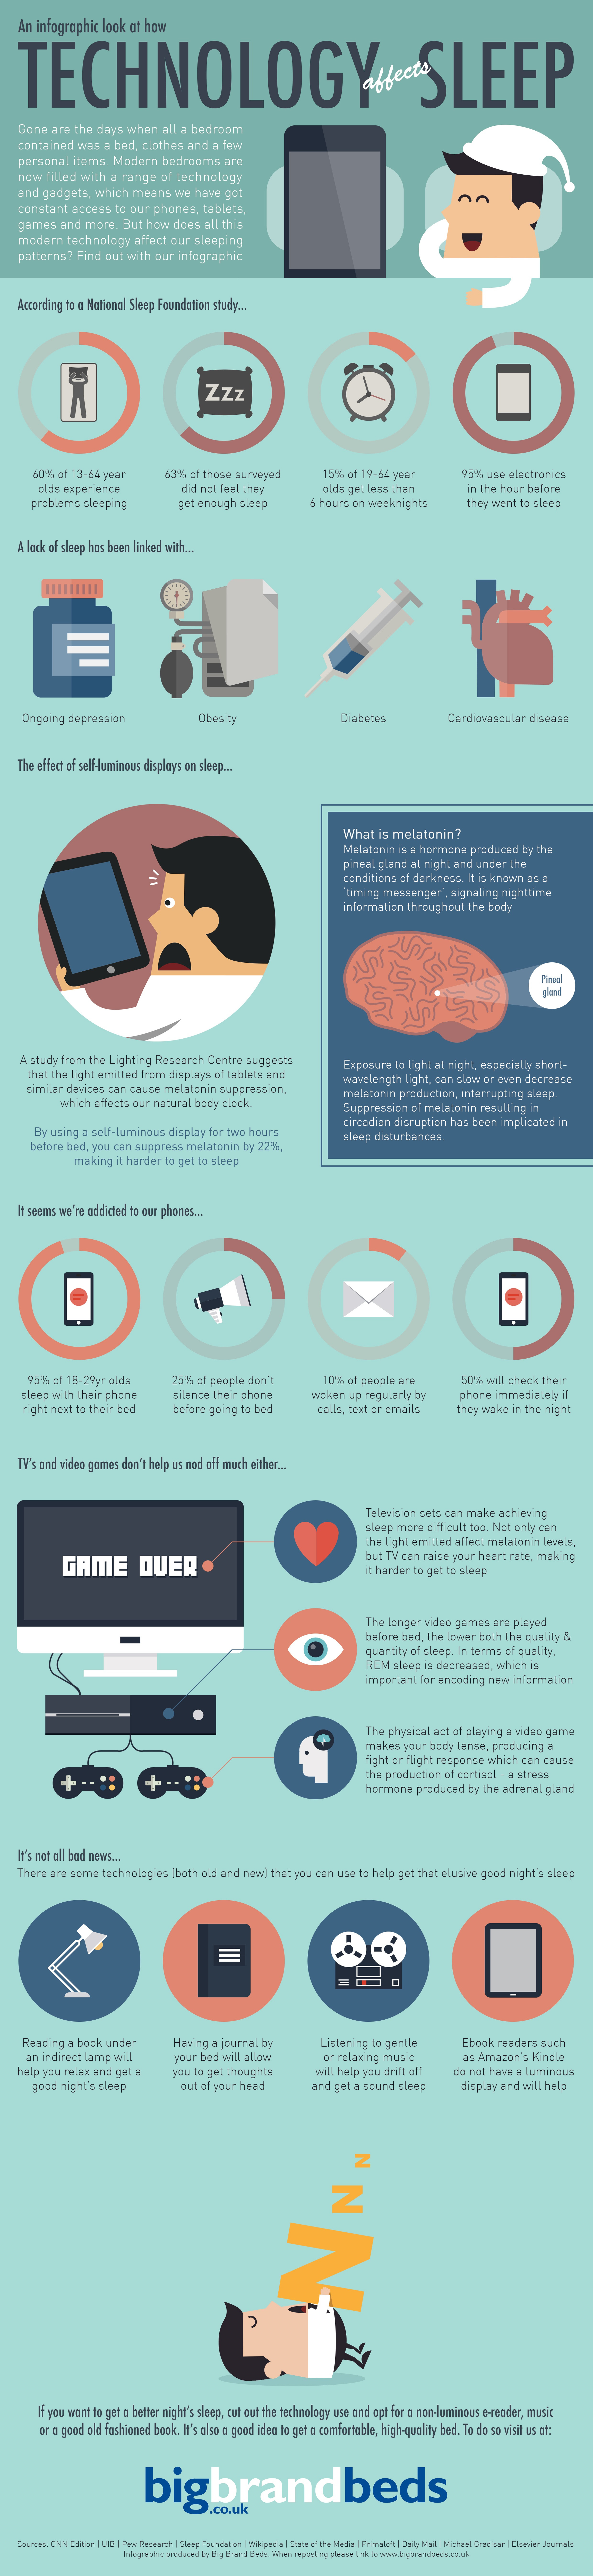 Infographic: How Technology Affects Sleep